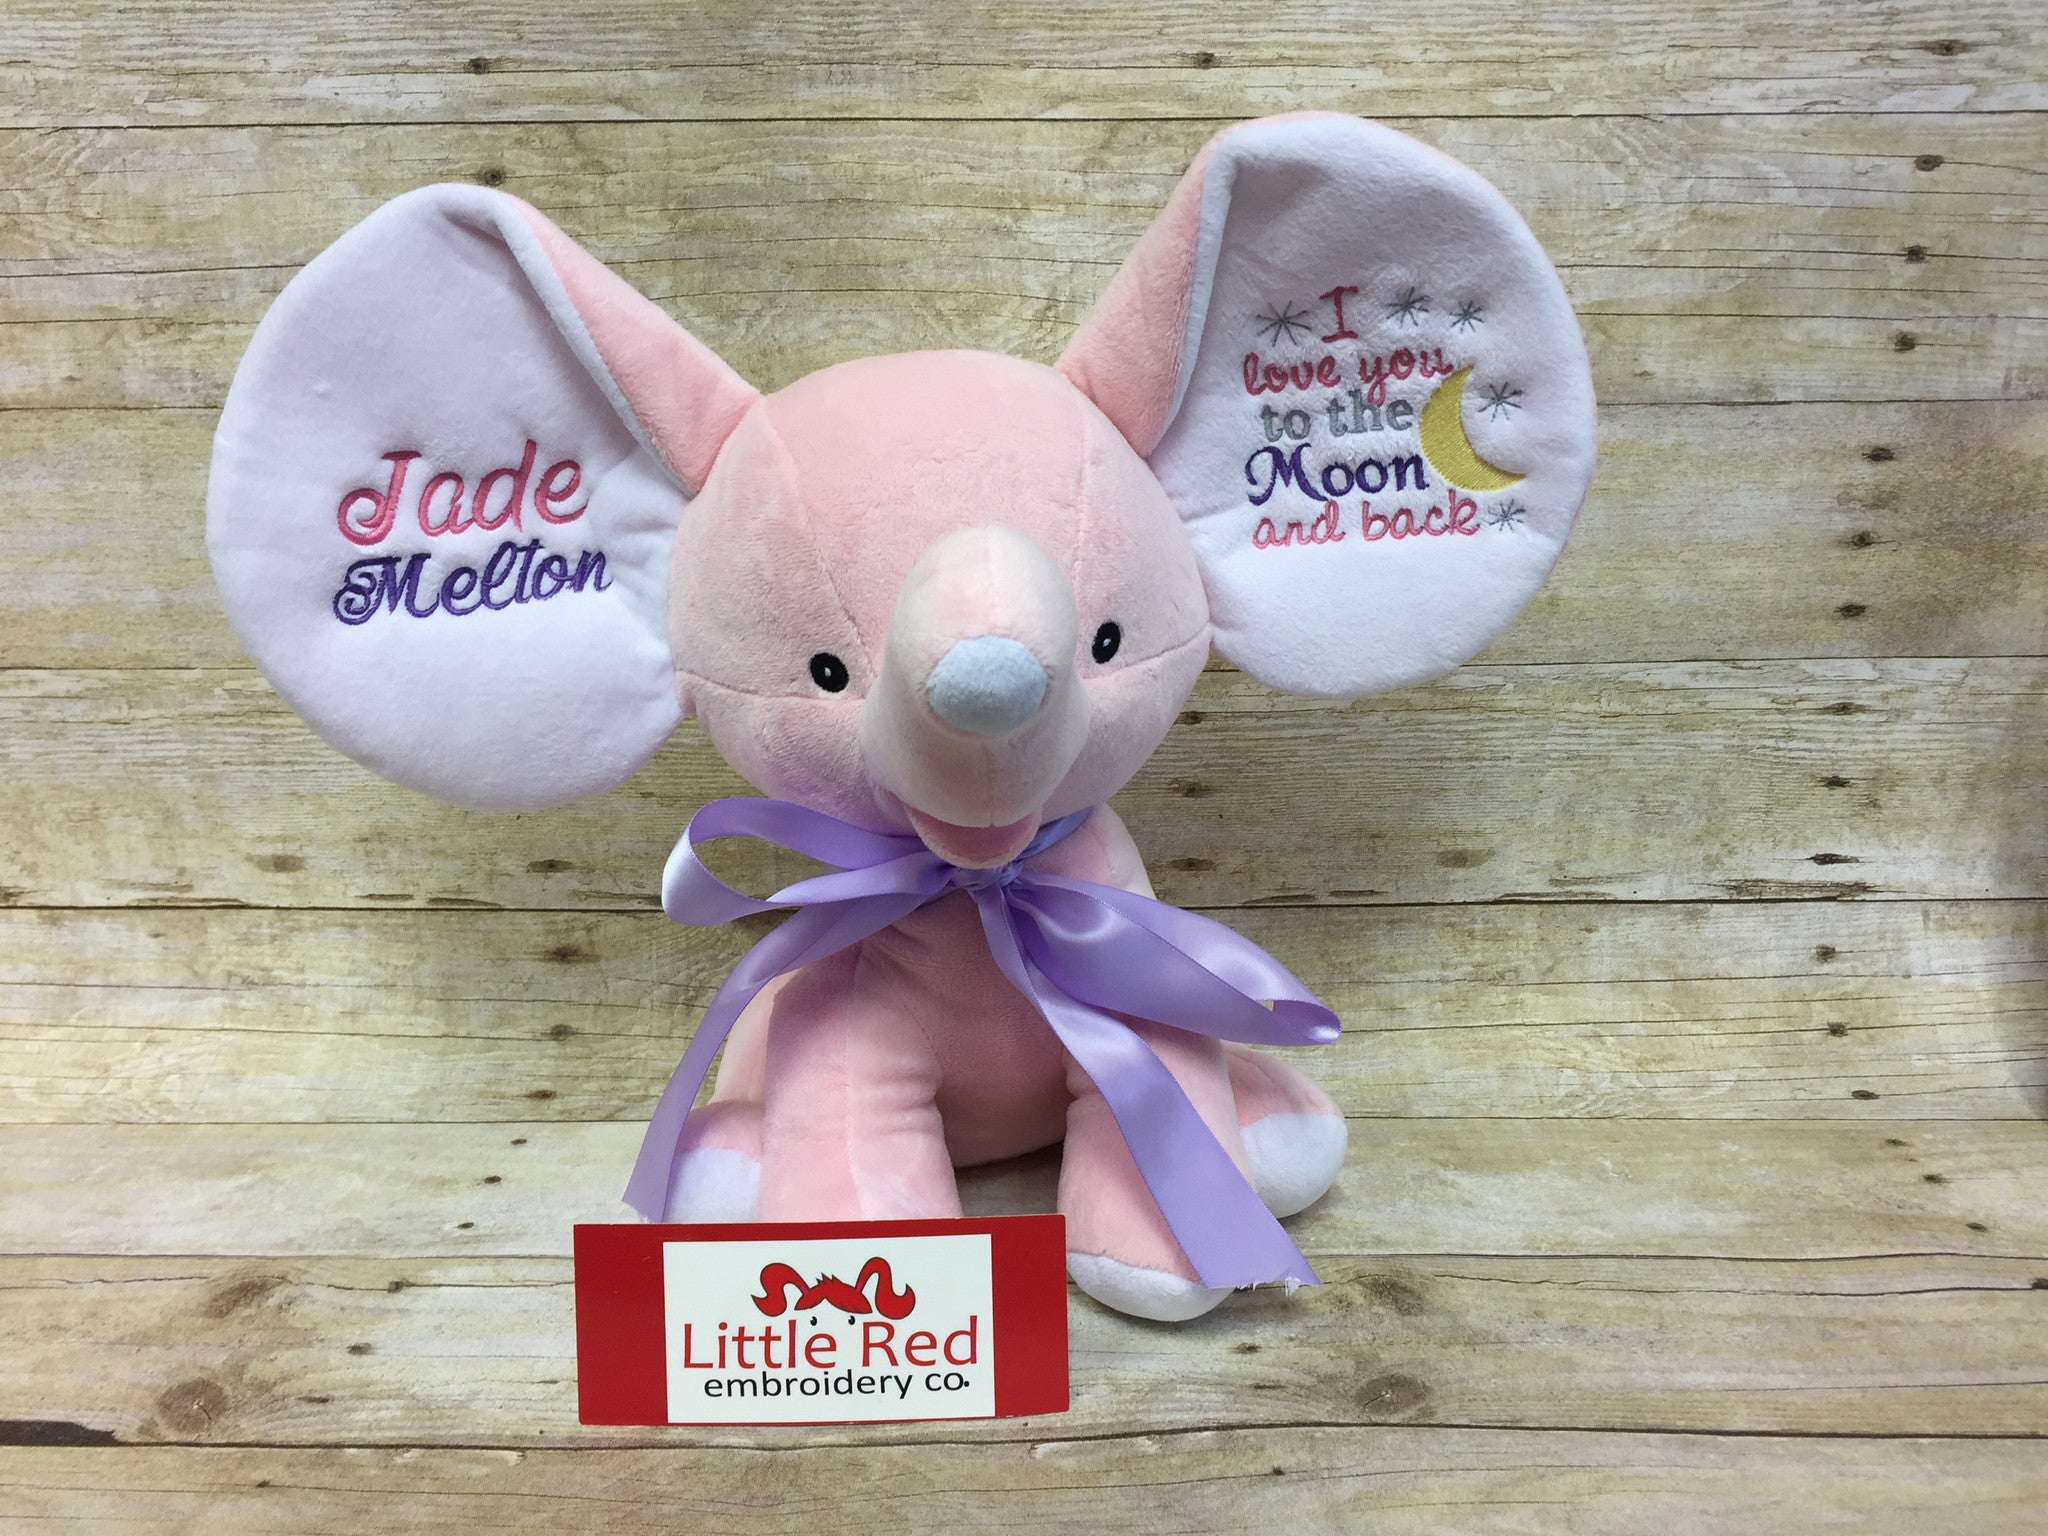 Cubbies™ Light Pink Dumble Elephant With Custom Embroidery